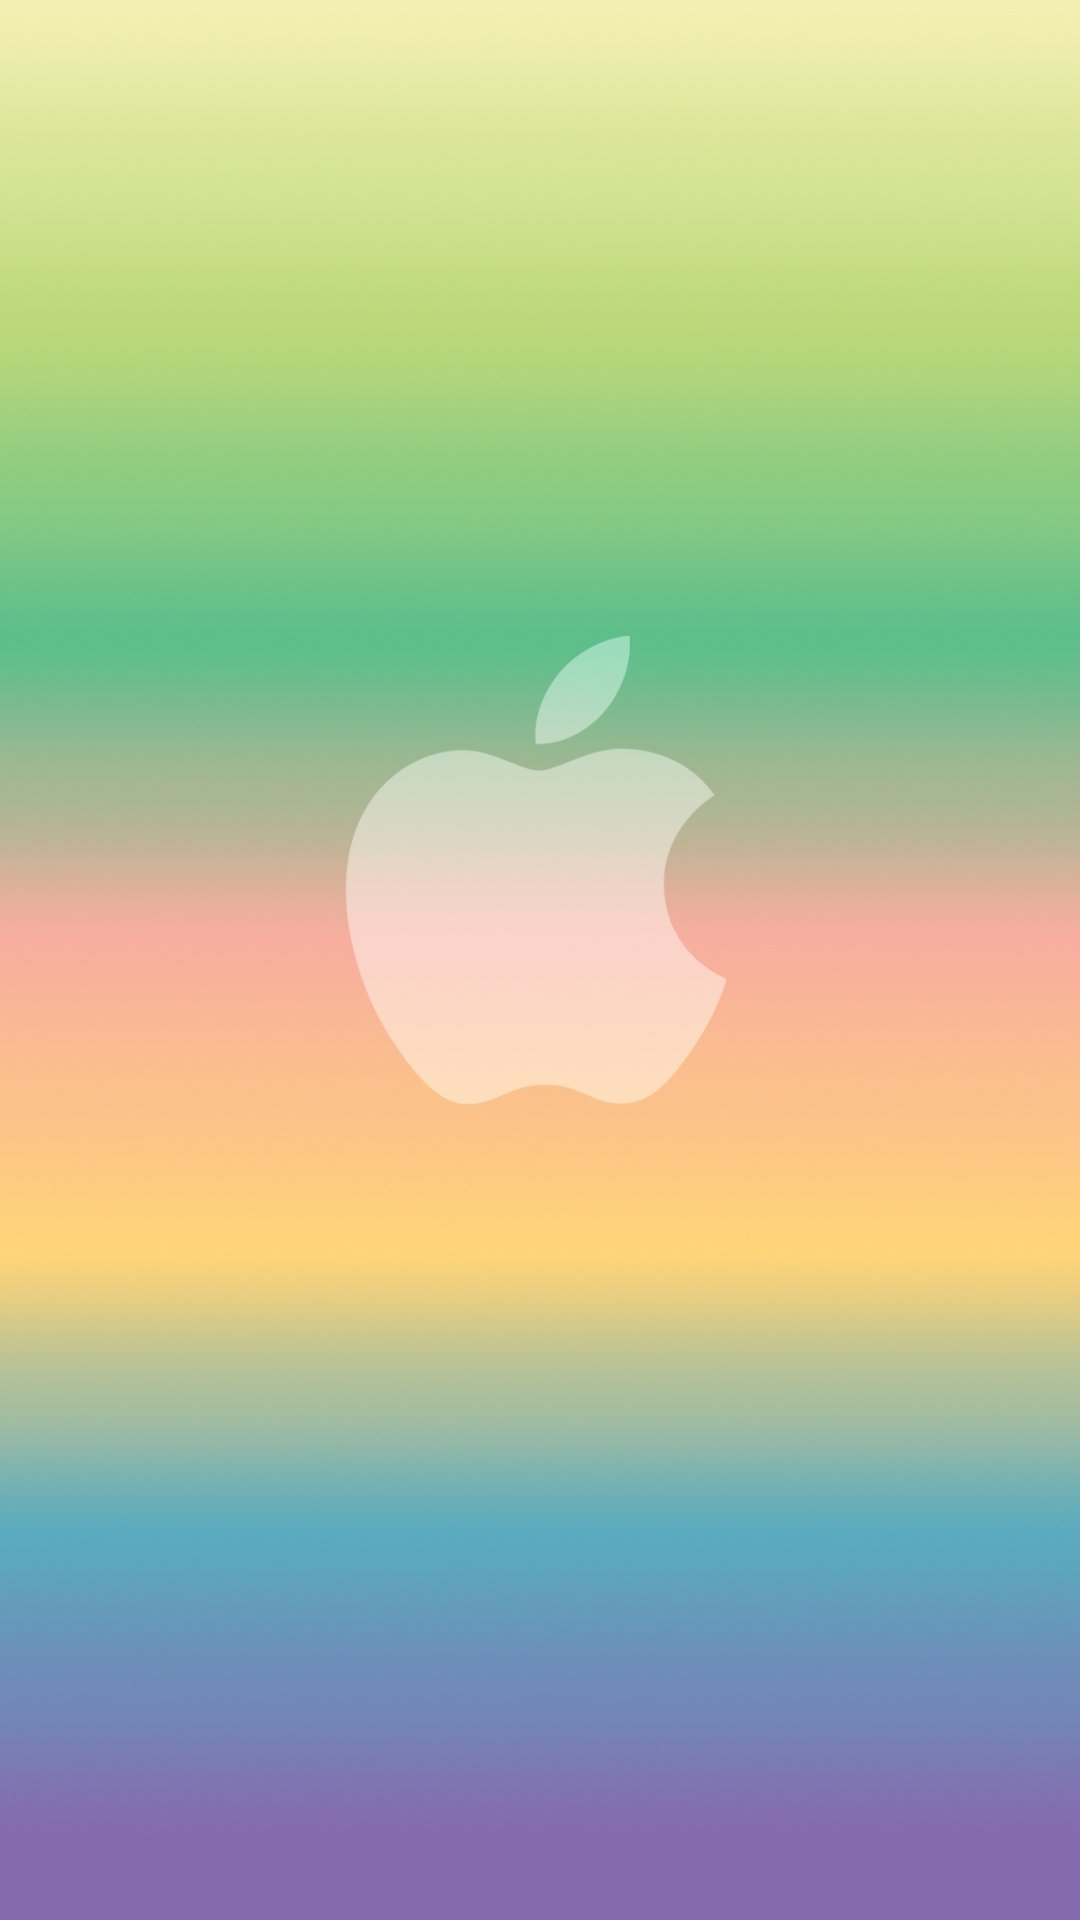 iPhone 6 Plus Wallpaper Apple Logo 03 iPhone 6 Wallpapers 1080x1920